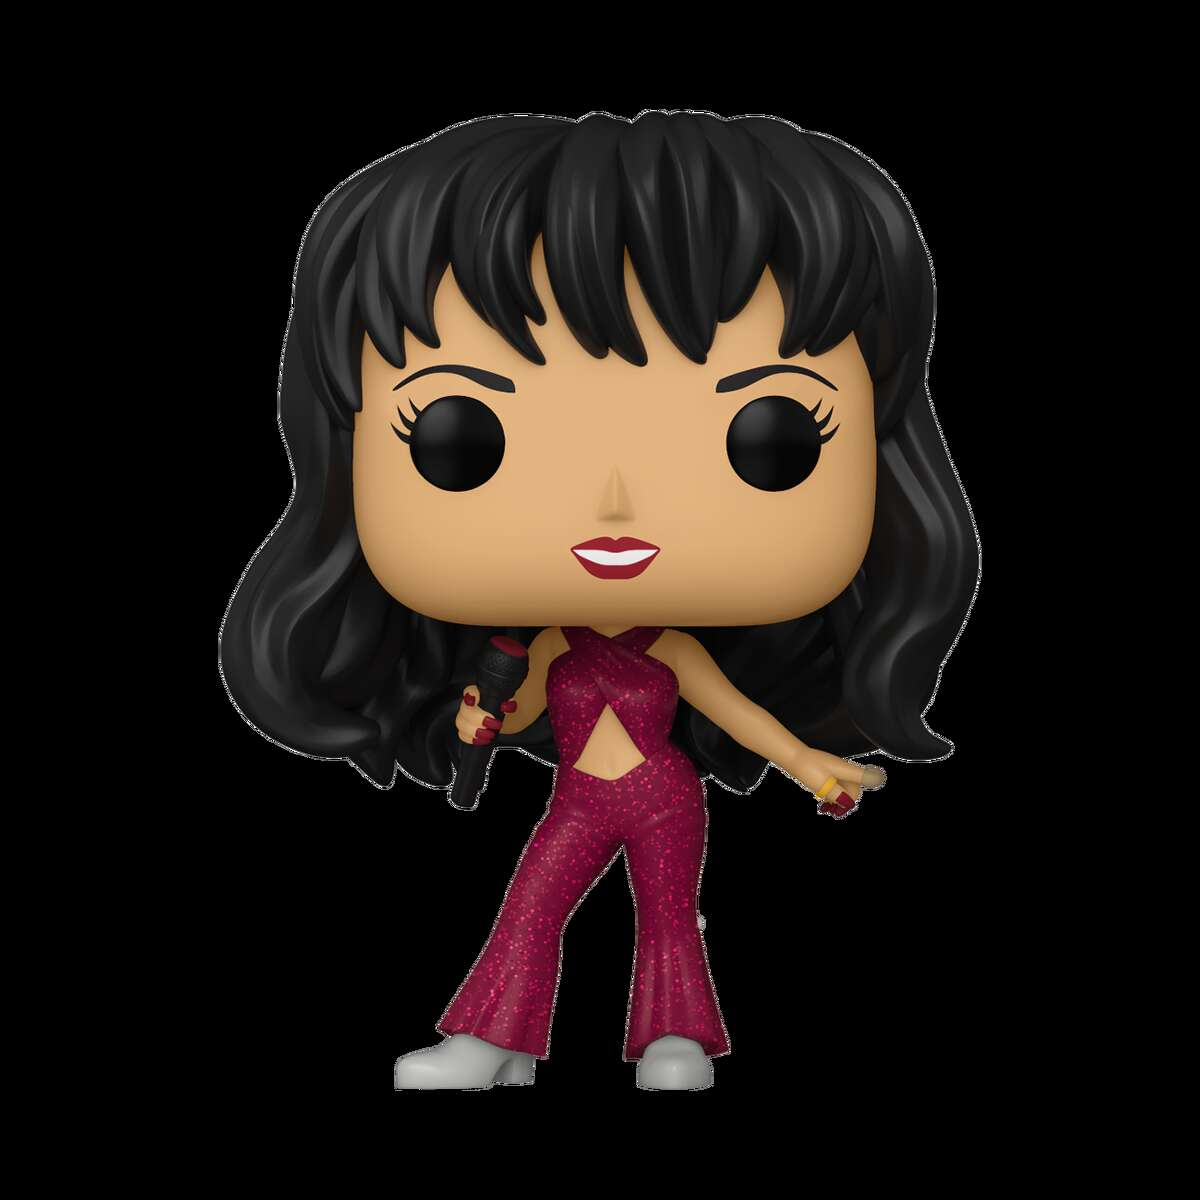 Last week, Funko released the designs of its first-ever Pop! line of the Cumbia Queen Selena - and the figures sold out quick on Amazon. The Pop! with Selena in the iconic burgundy outfit is out of stock on Amazon but is still available for pre-order on Entertainment Earth for $10.99.